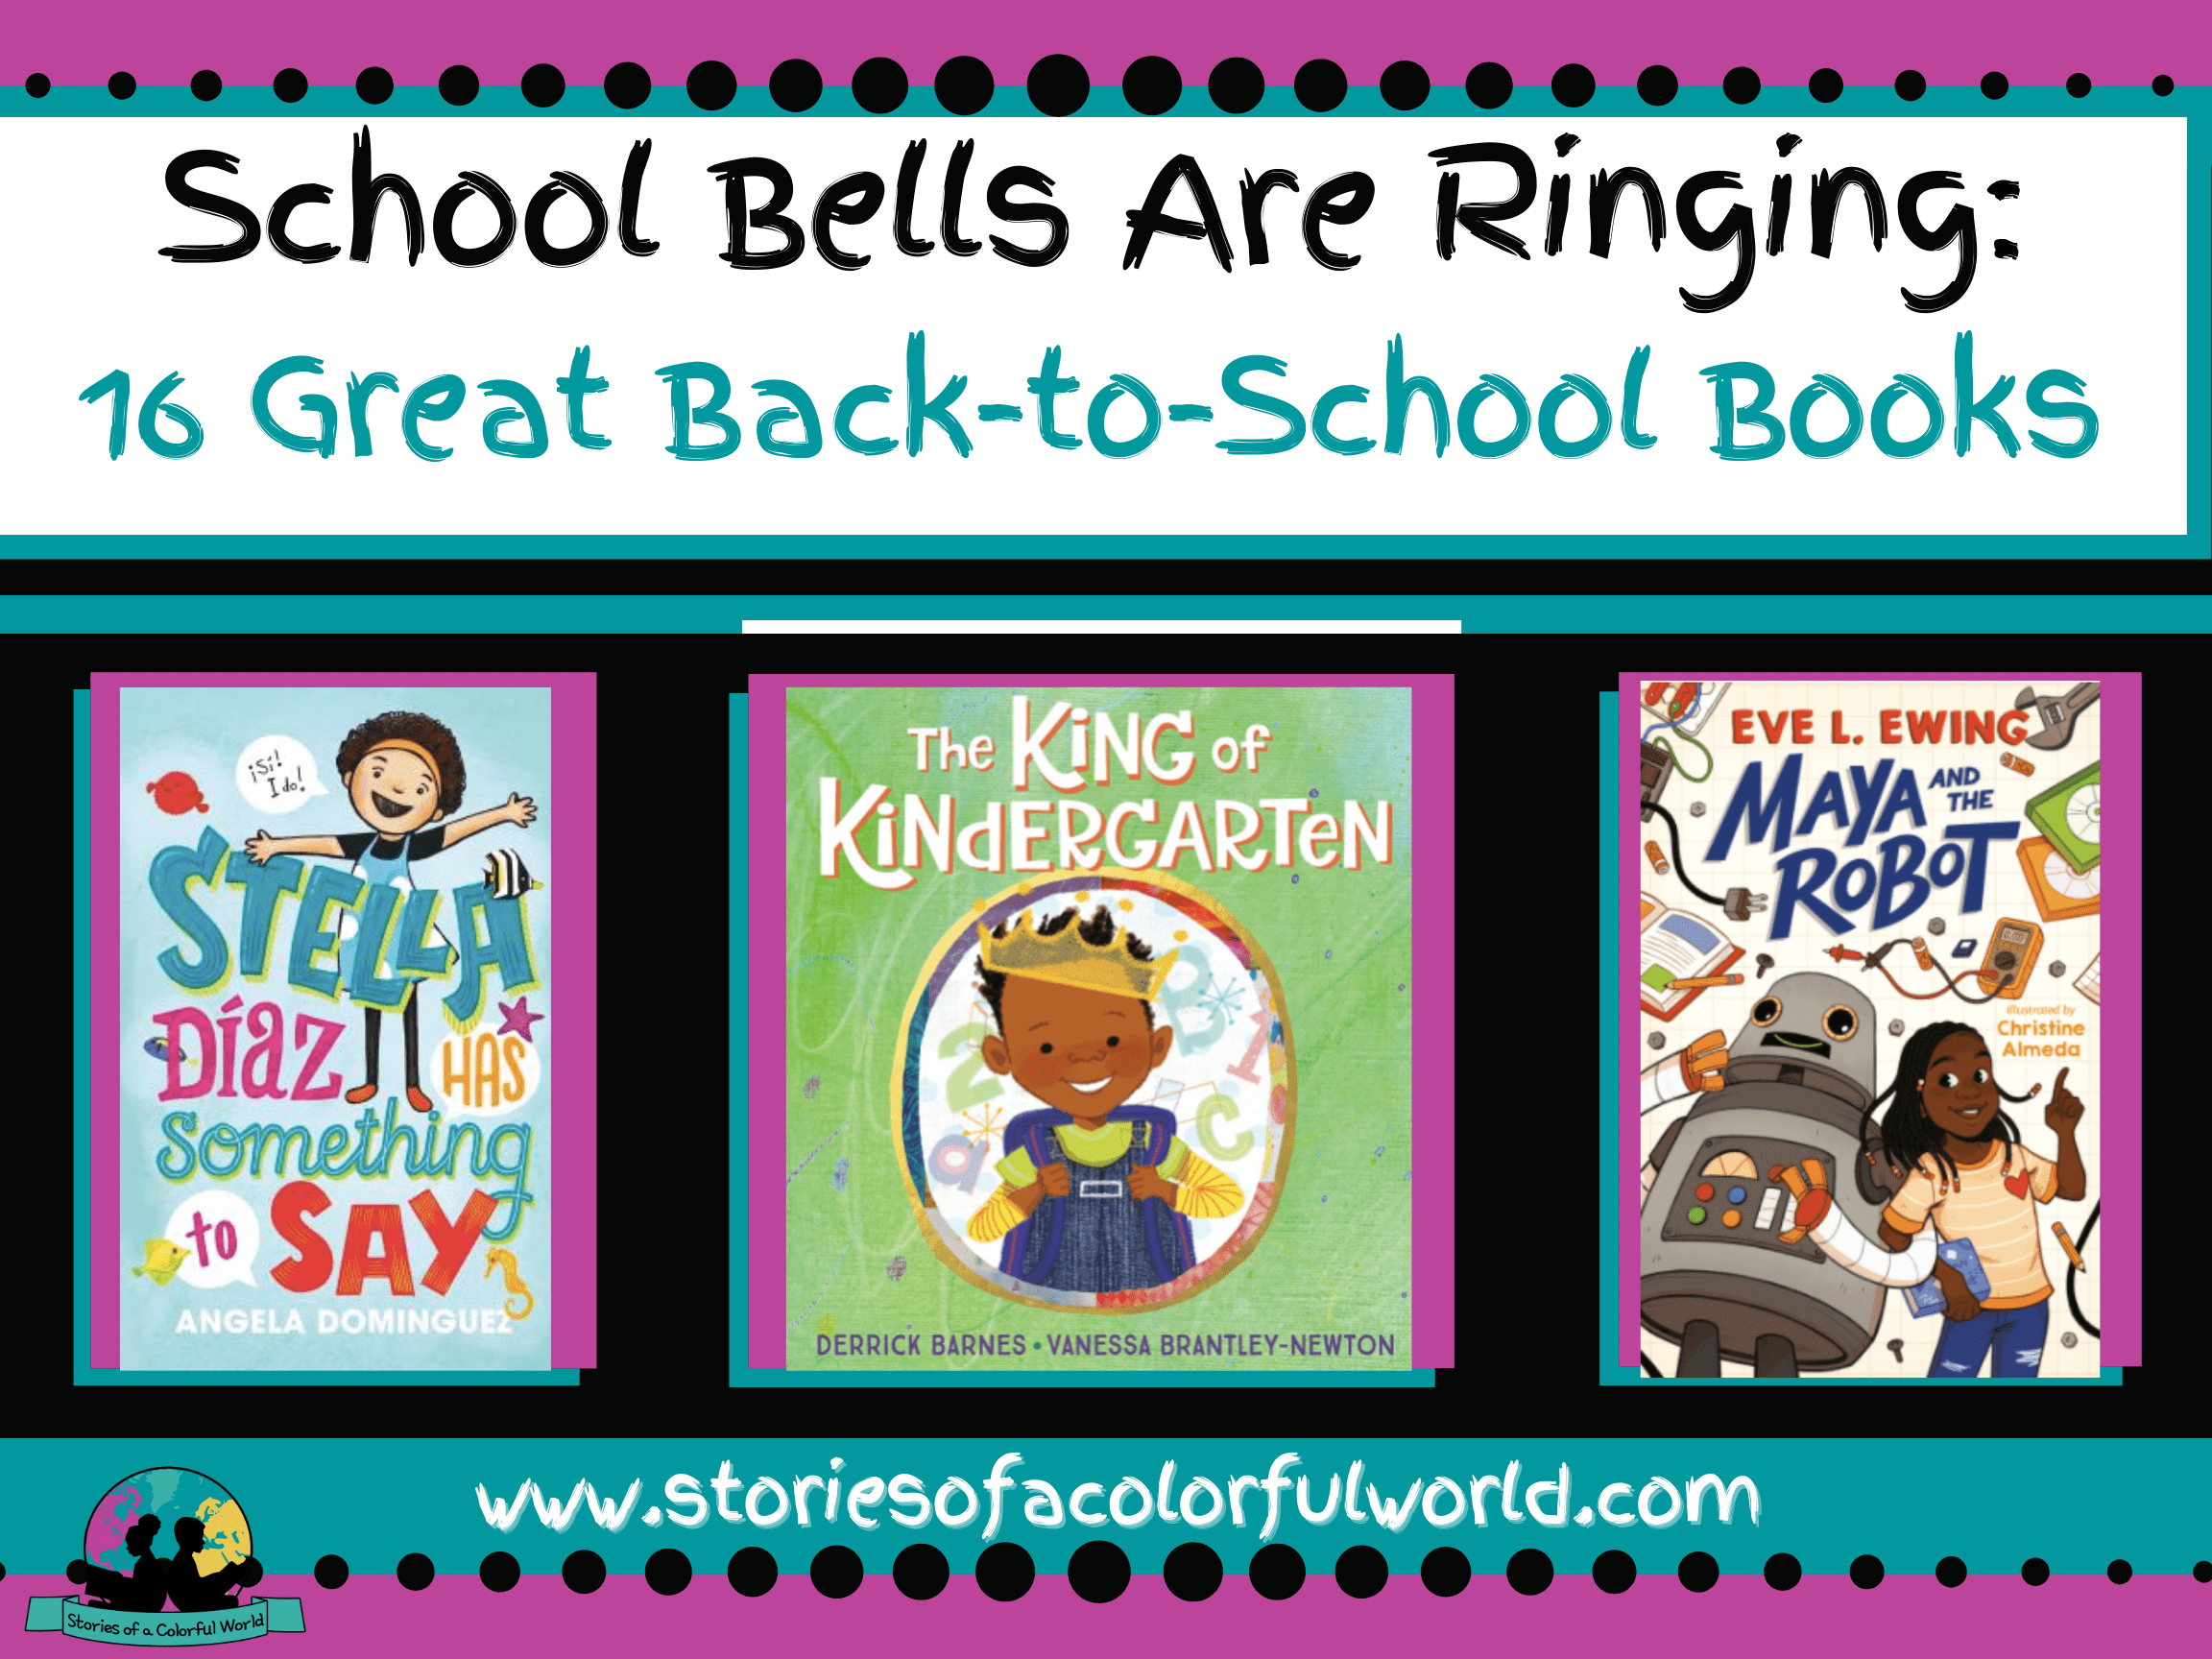 School Bells Are Ringing: Back-to-School Books